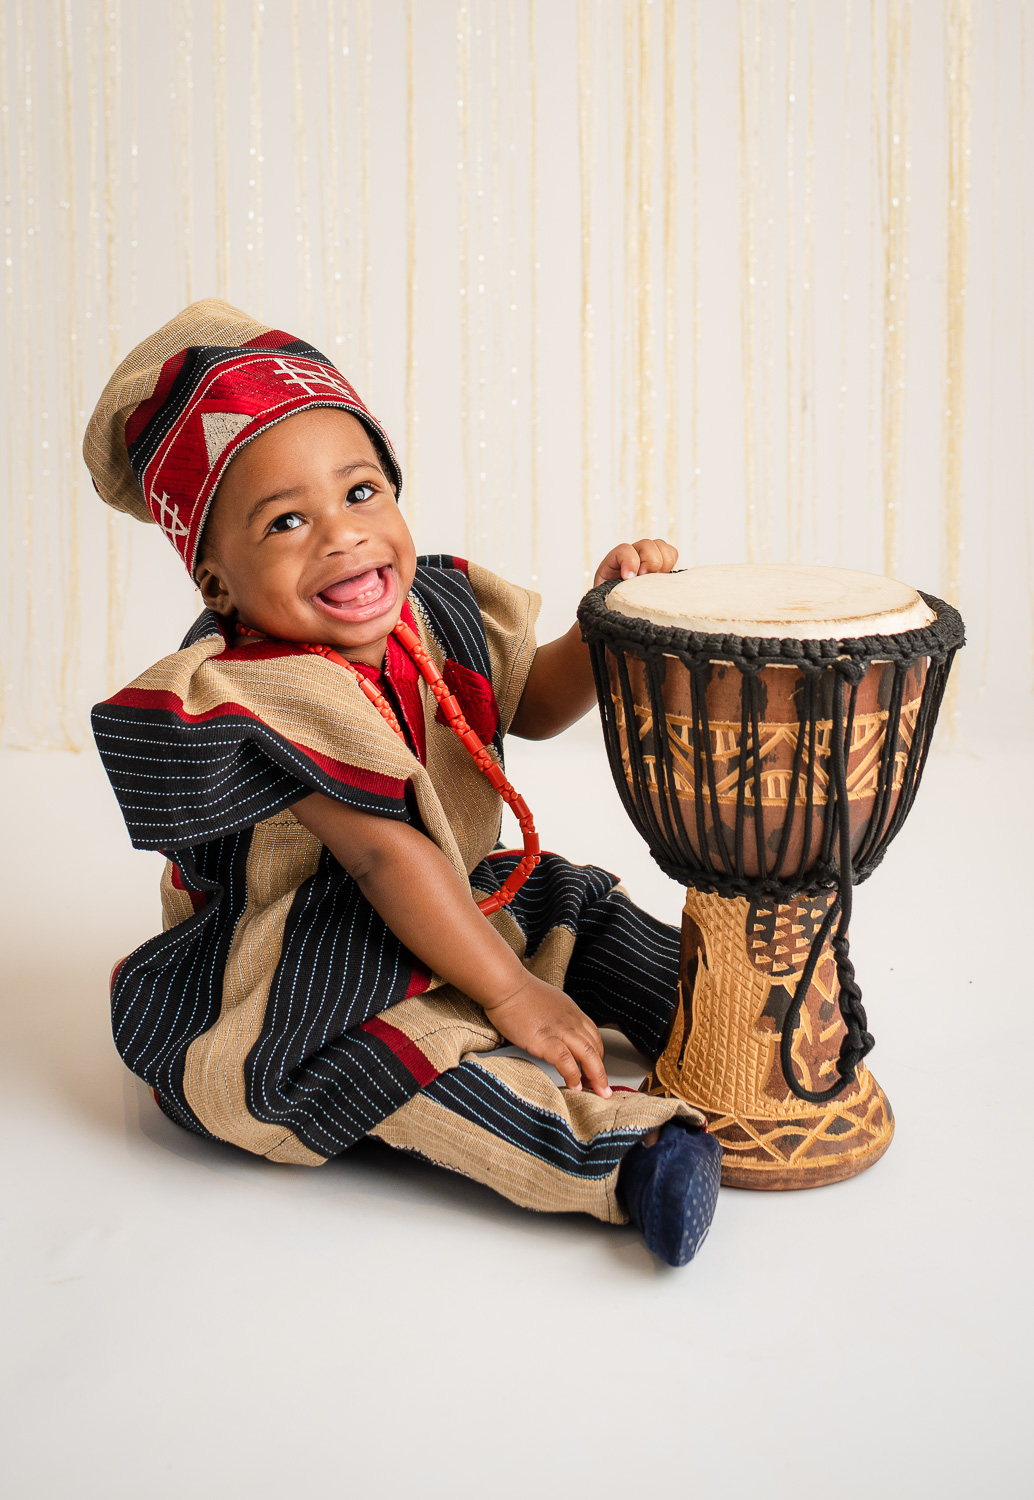 baby playing on a drum